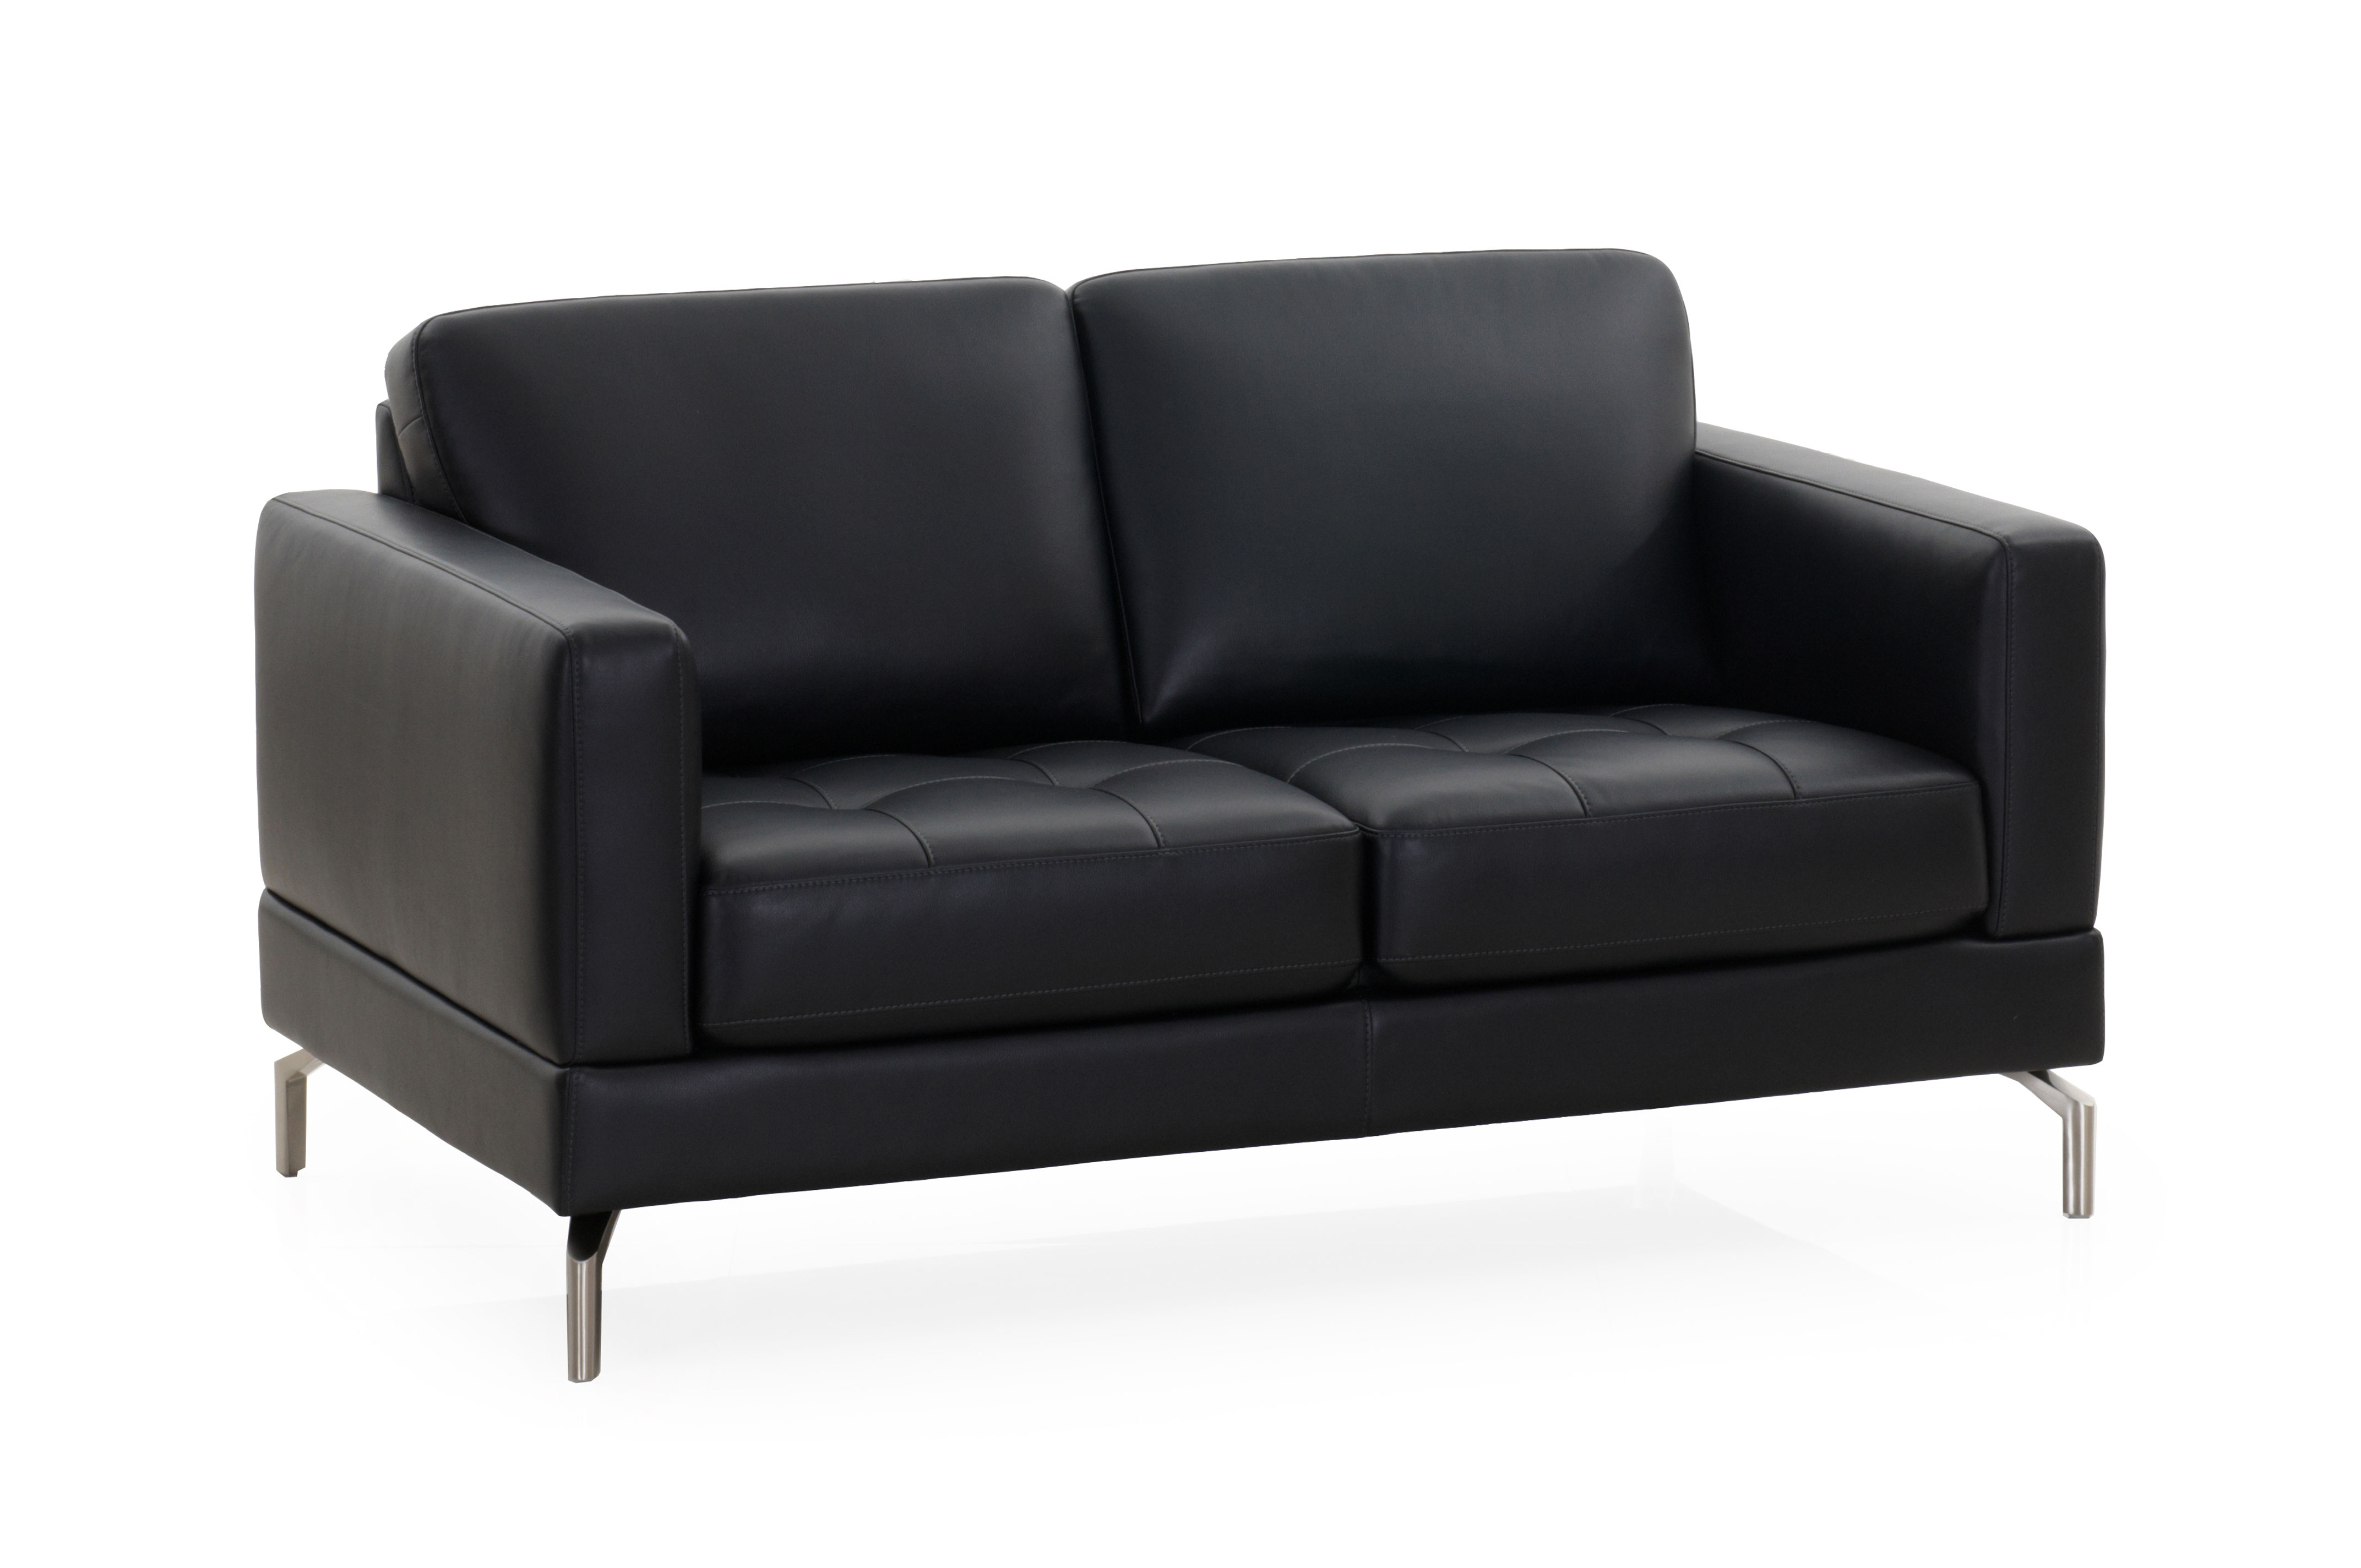 2 seater sofa new zealand turn my bed into a recliner nz energywarden